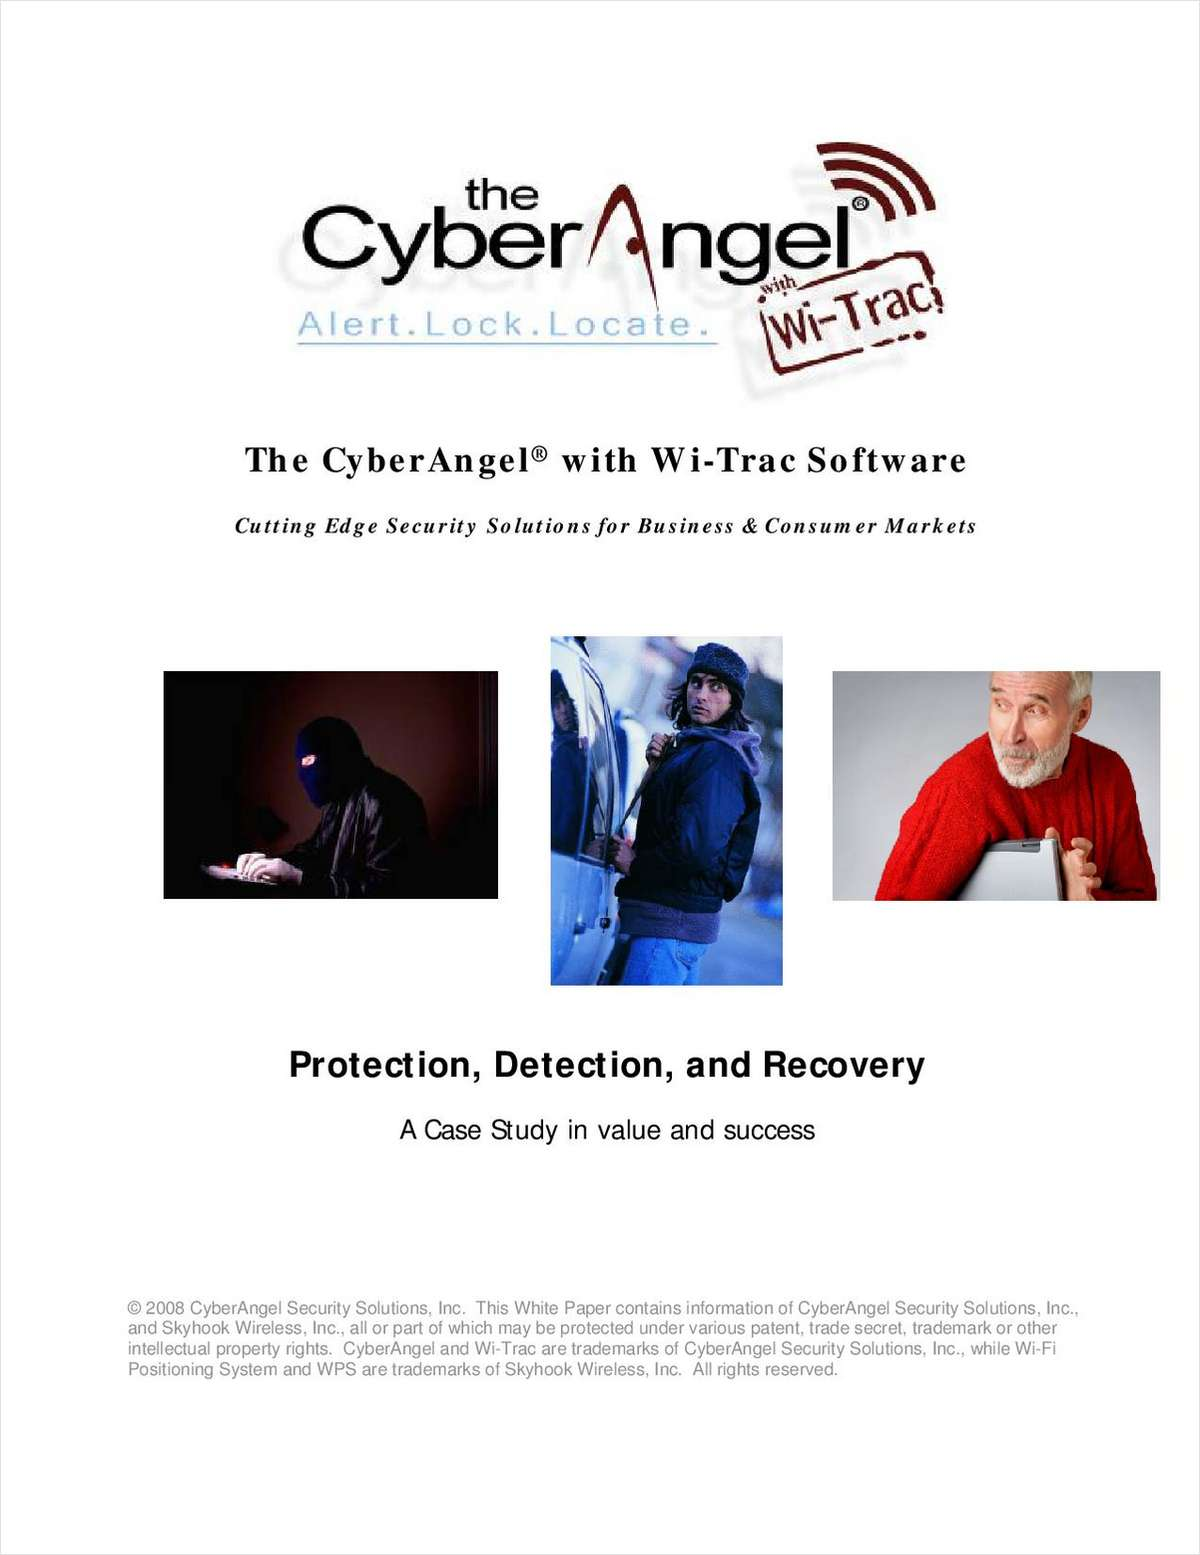 The Benefits of CyberAngel Security Solutions: Protection, Detection and Recovery